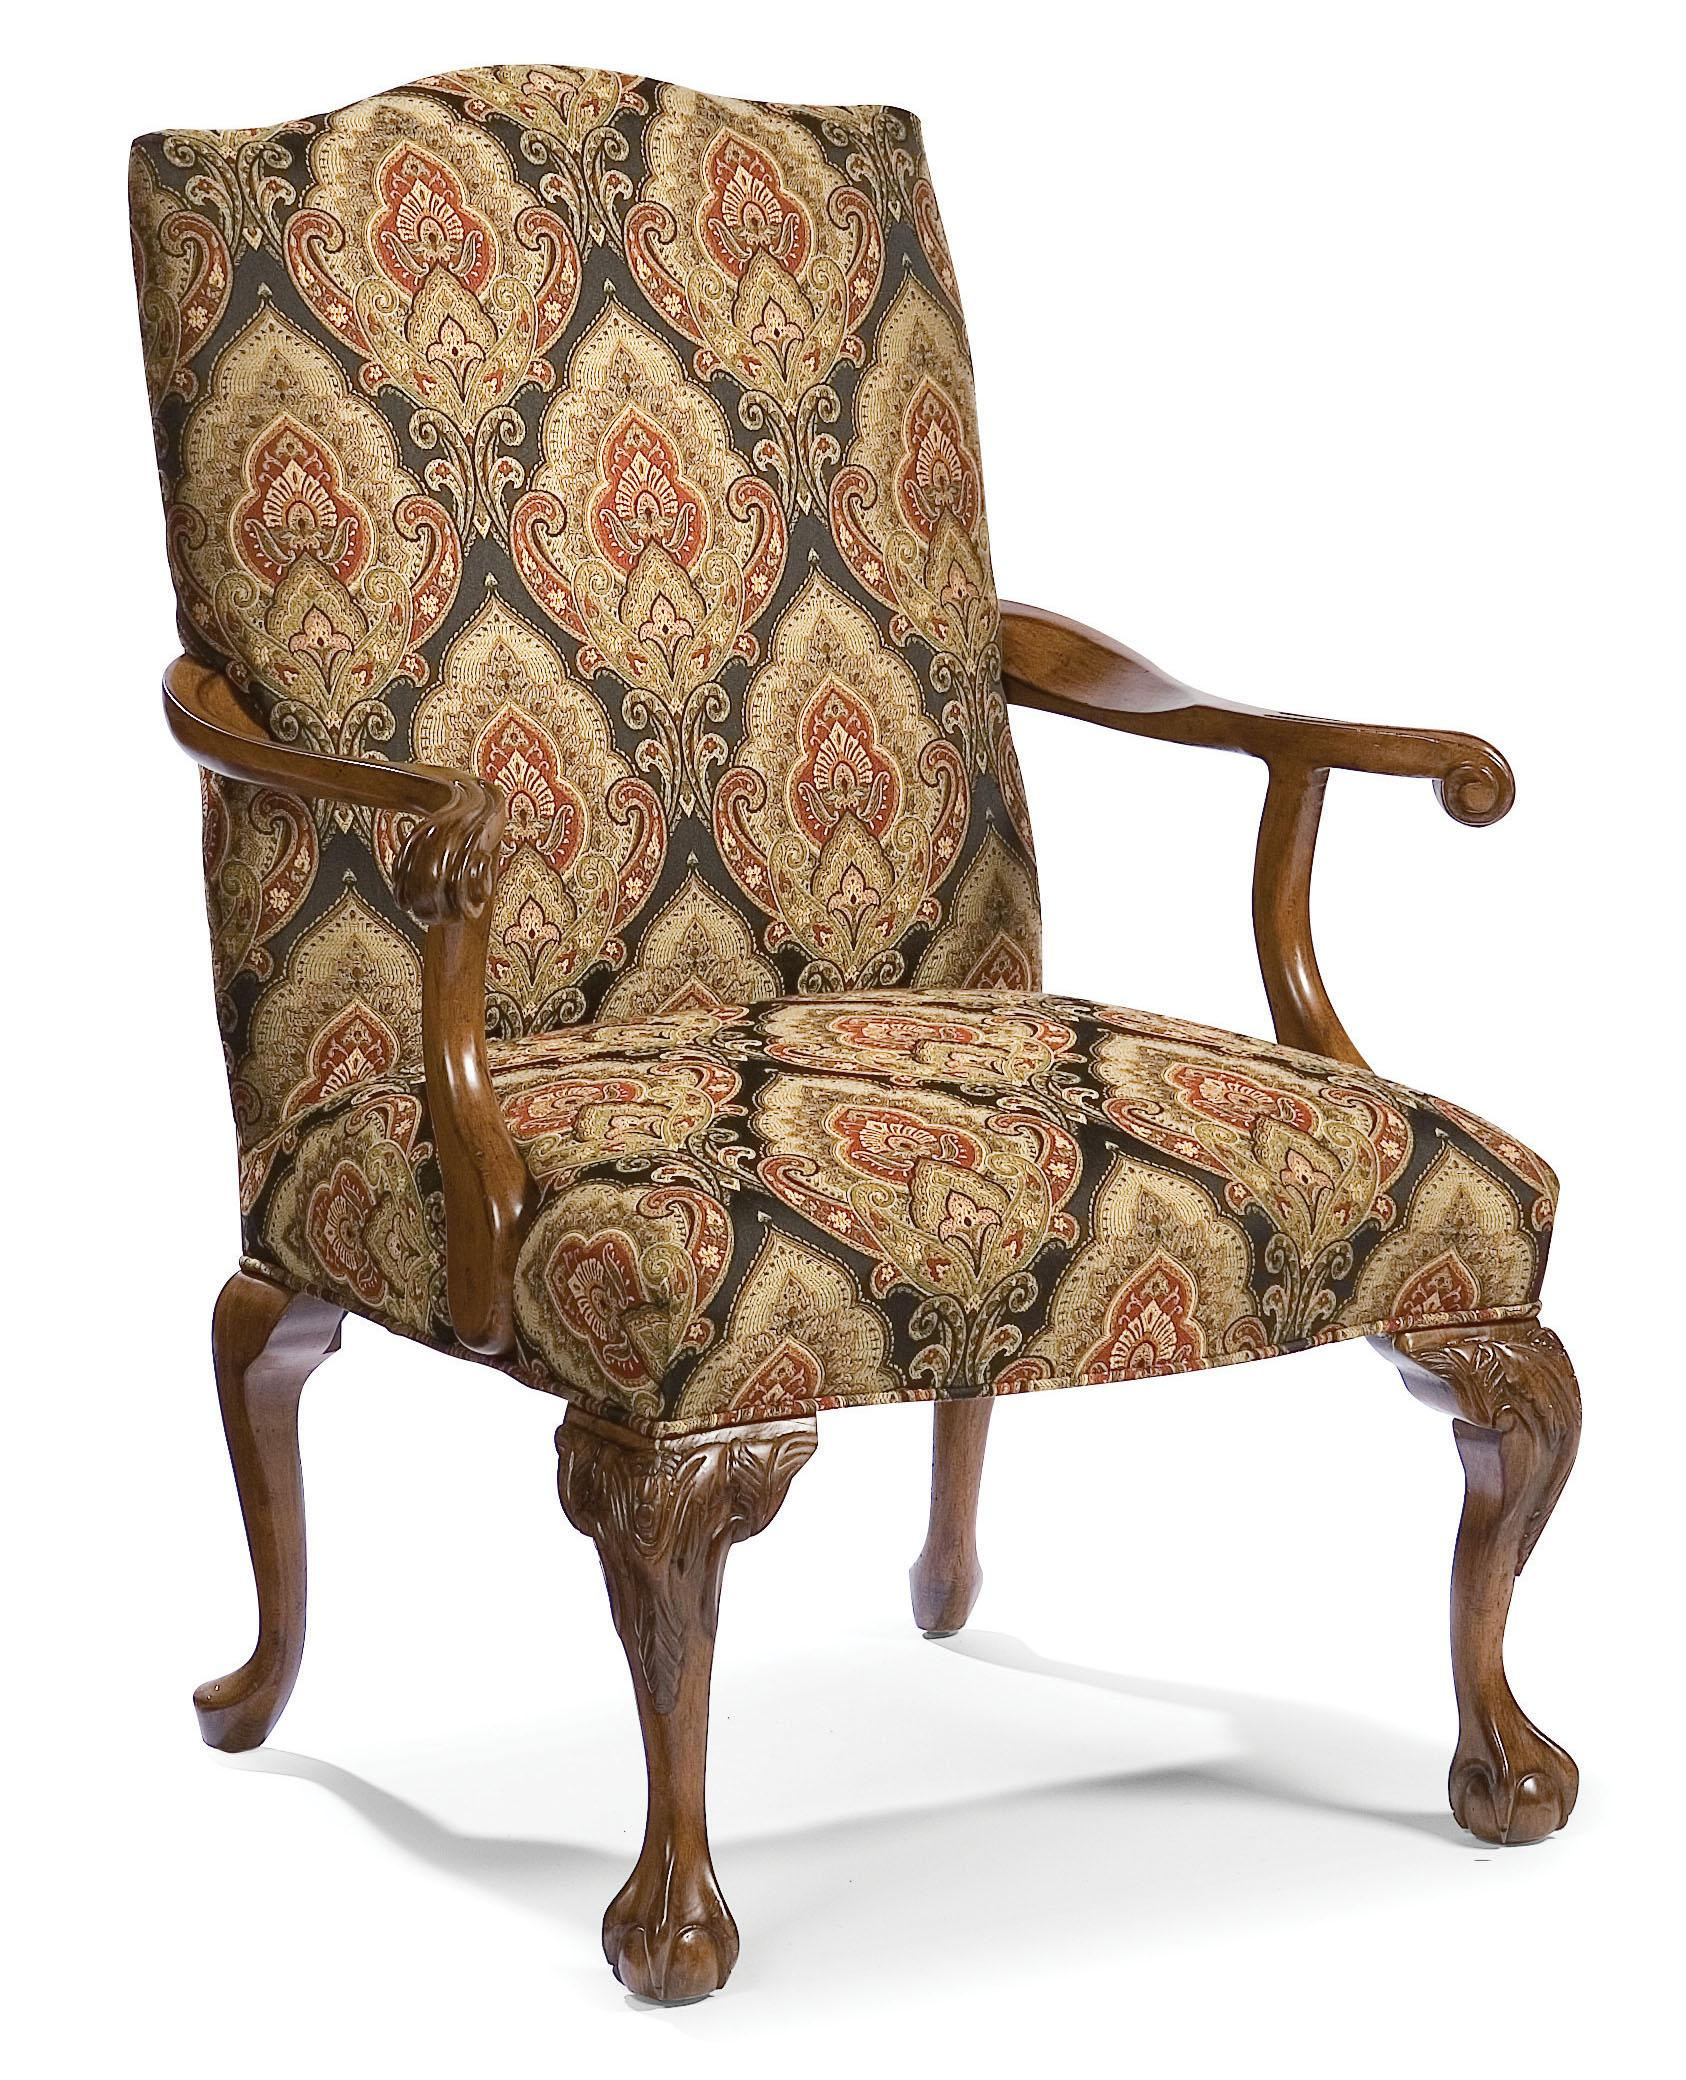 Fairfield Chairs Exposed Wood Accent Chair - Item Number: 5170-01